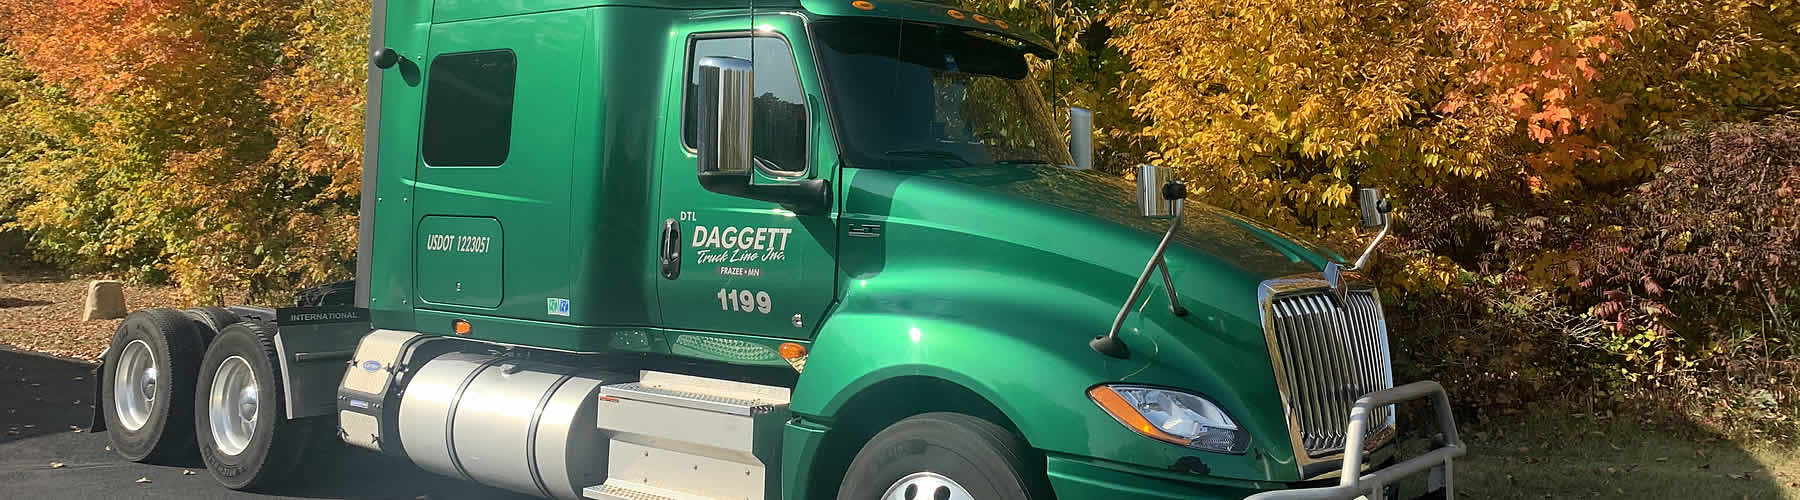 Daggett Truck Line Inc. has a history of trucking services in Minnesota and beyond.